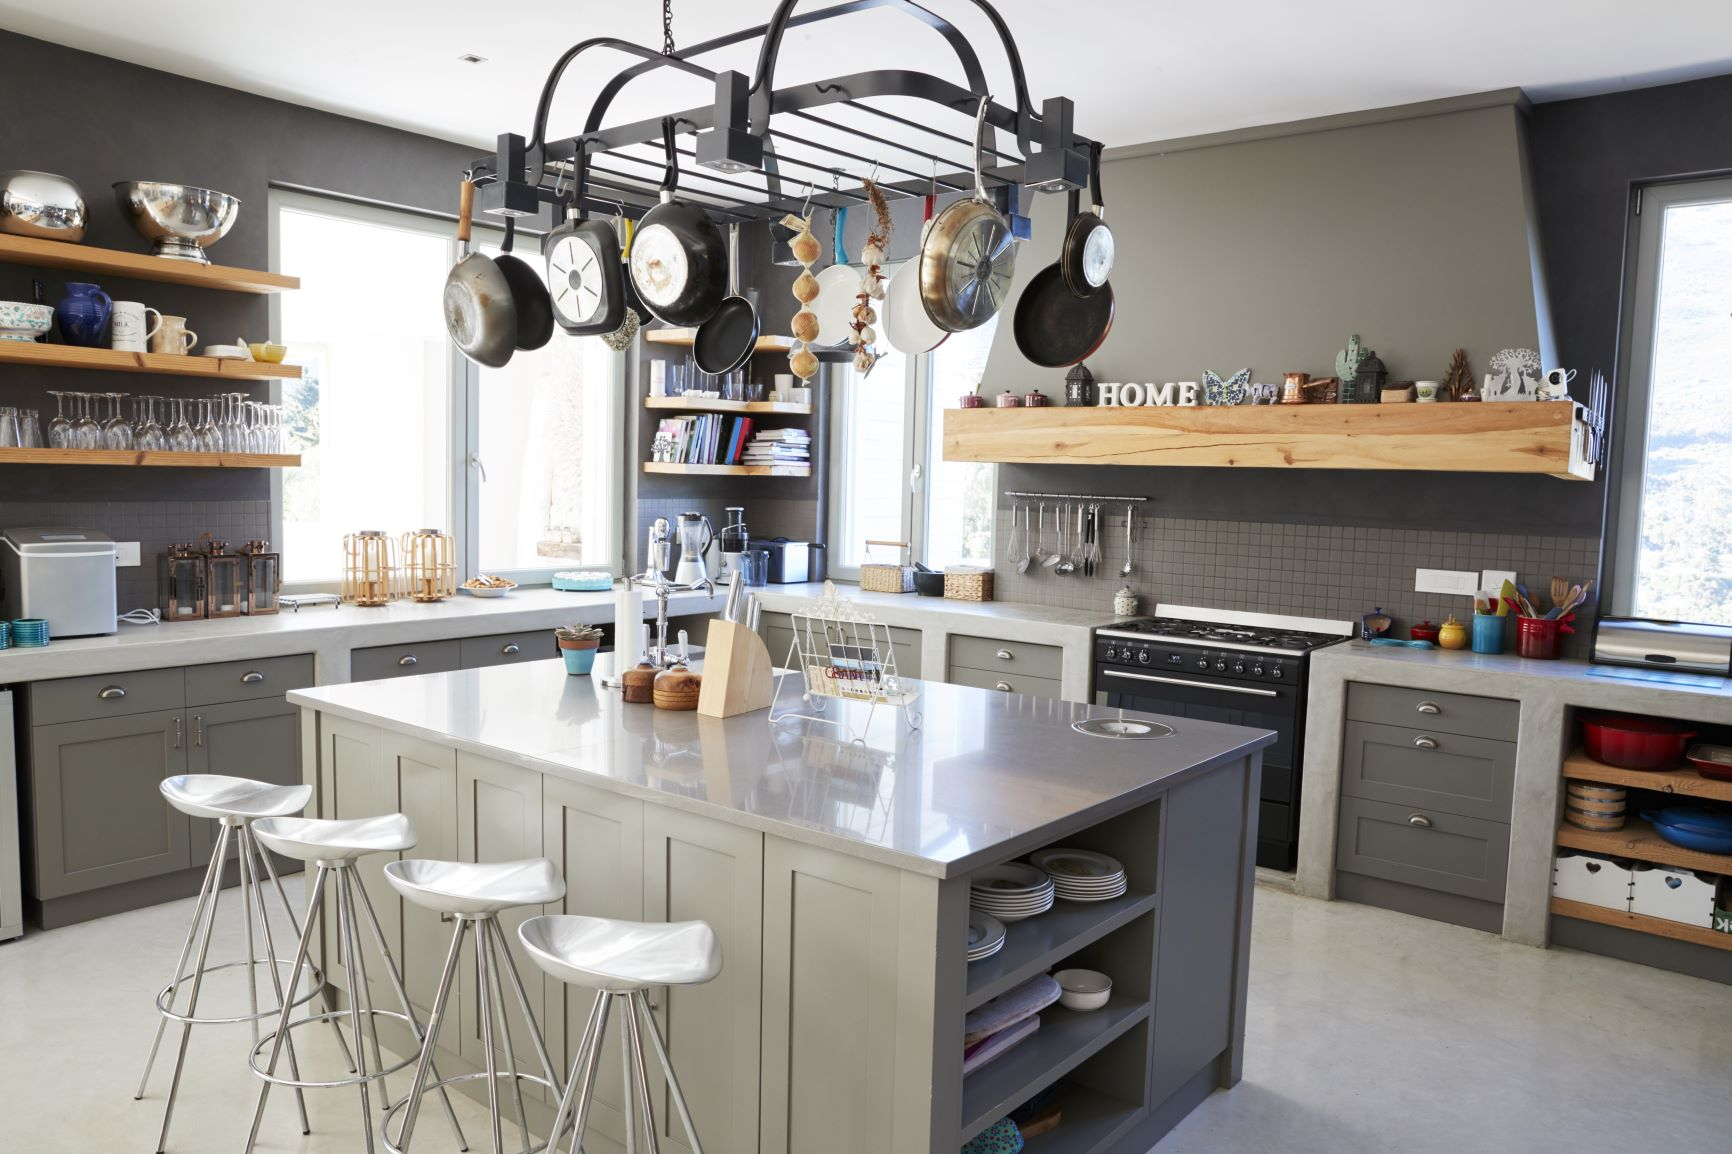 You can maximize storage space in your kitchen by adding a kitchen island with shelving, hanging pots and pans from the ceiling, and adding additional shelving in used spaces.